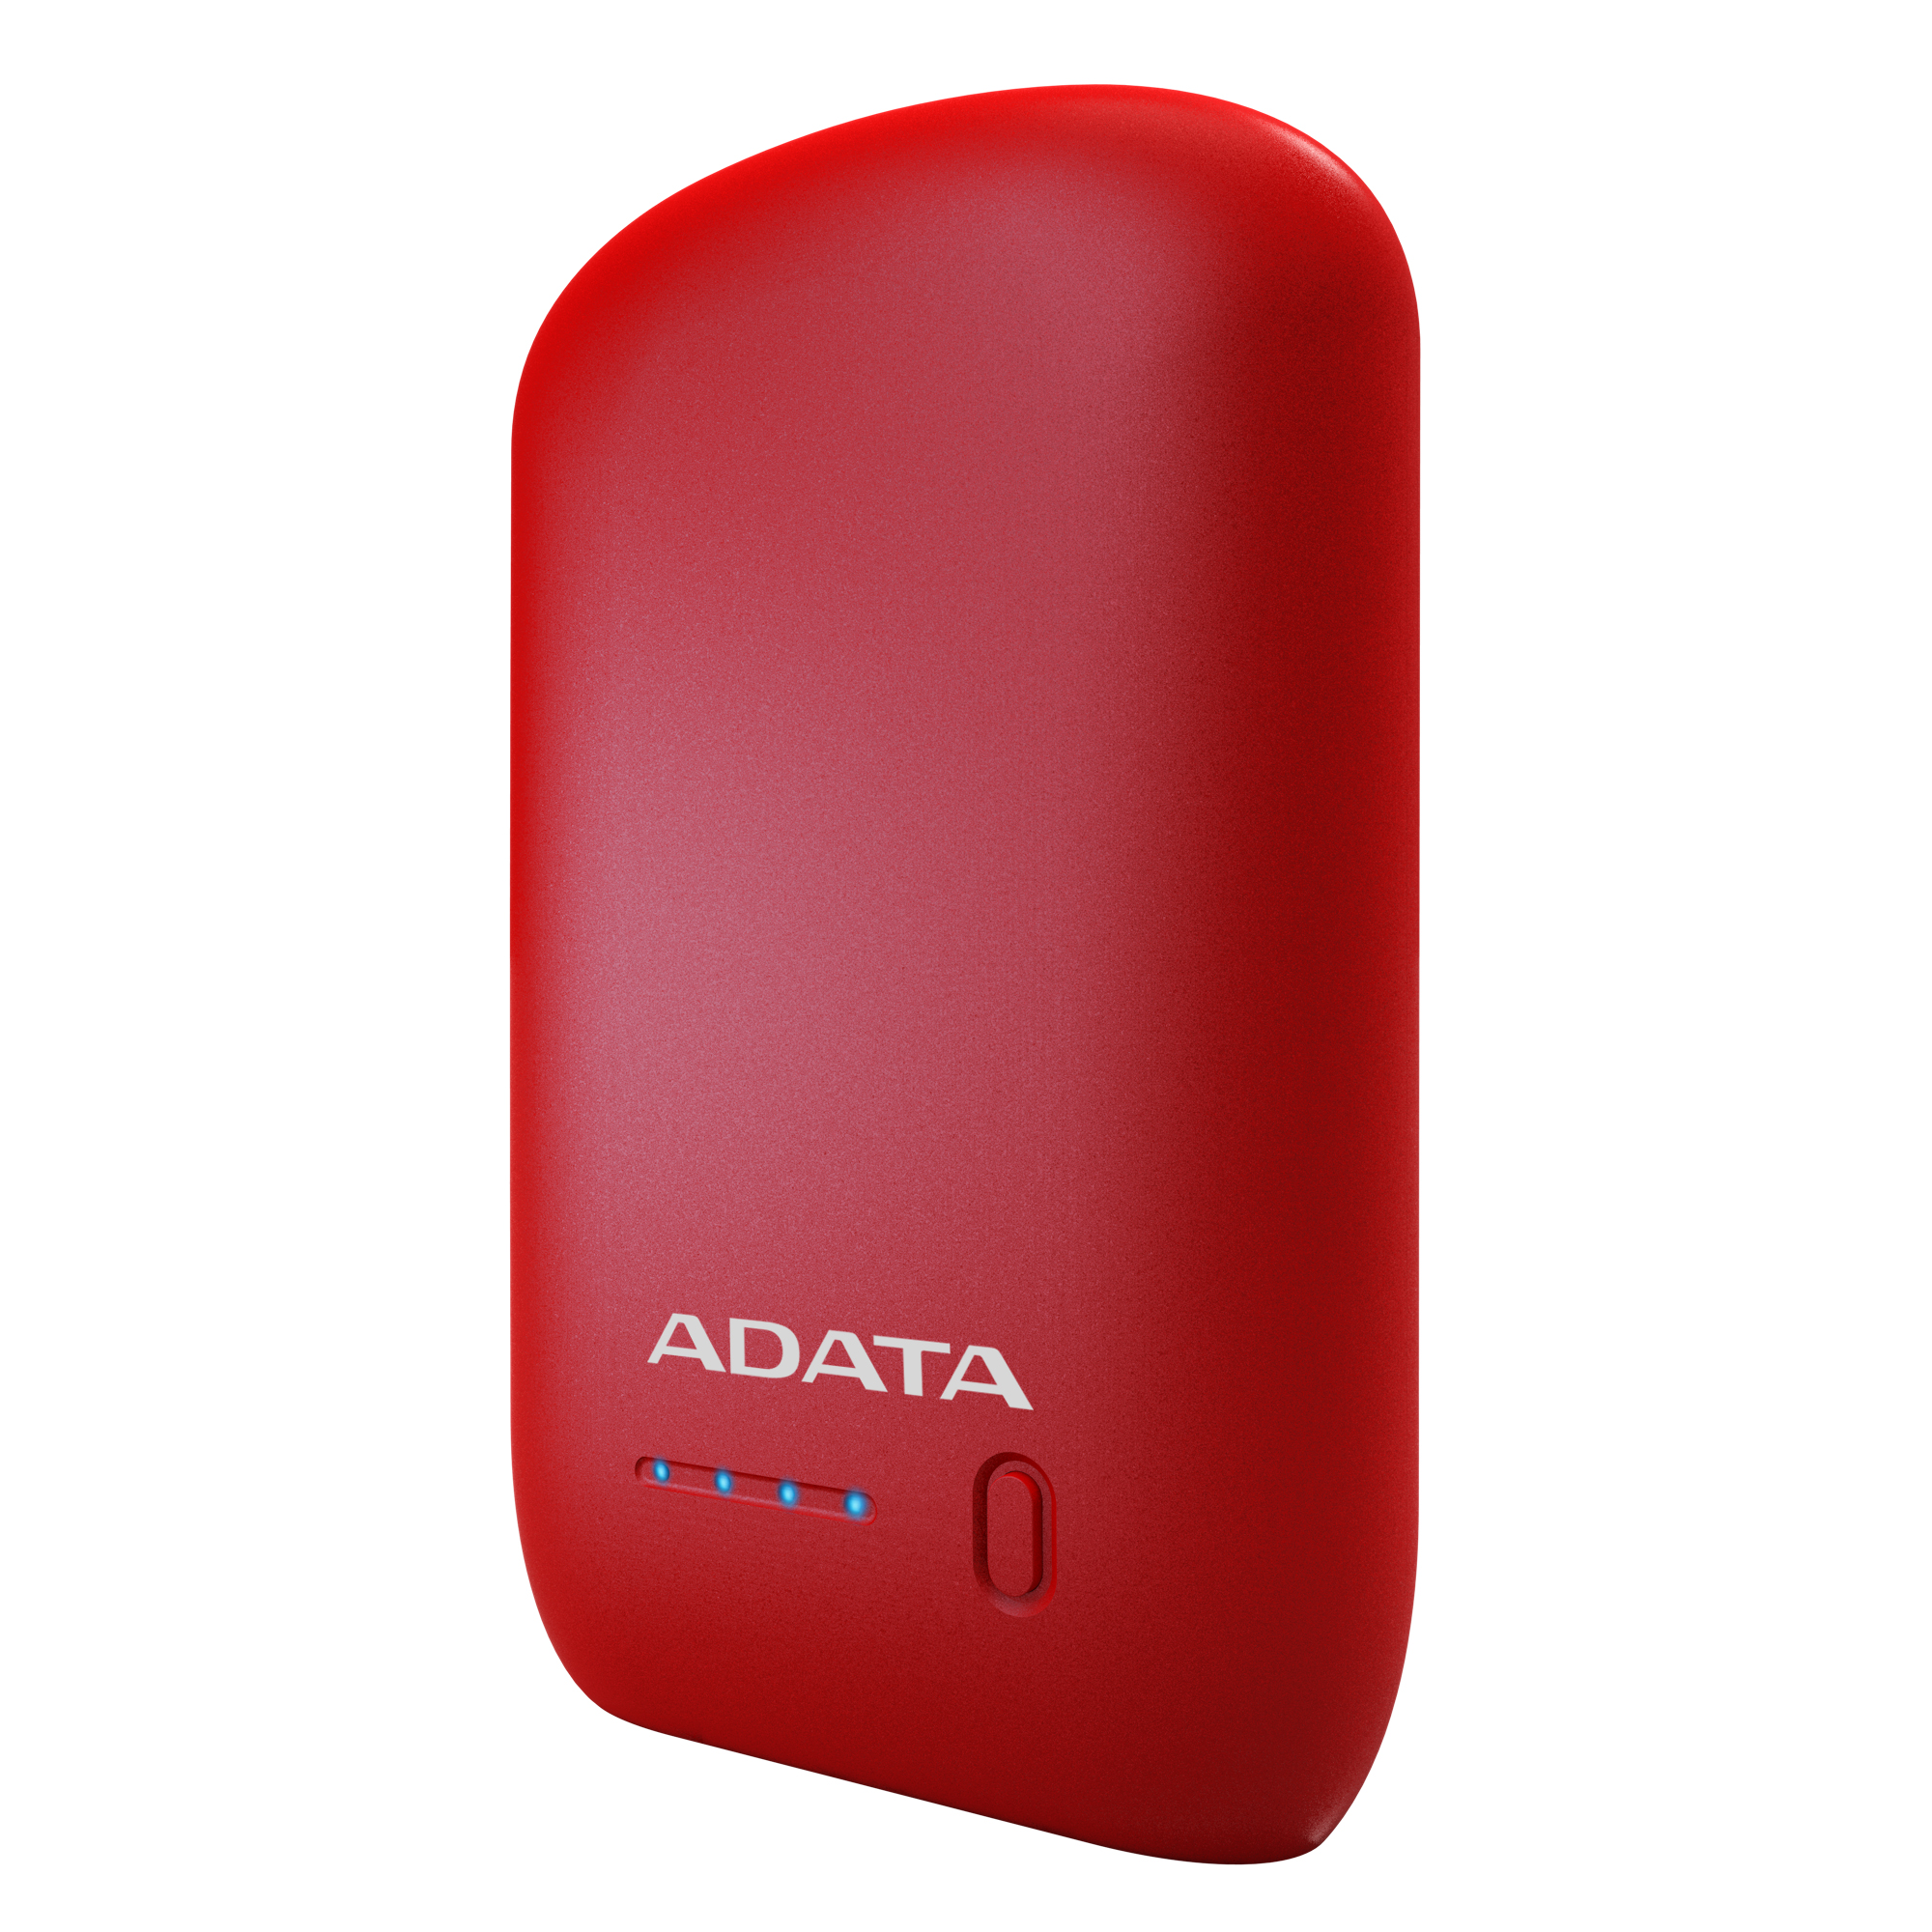 ADATA P10050 Power Bank 10050mAh červená